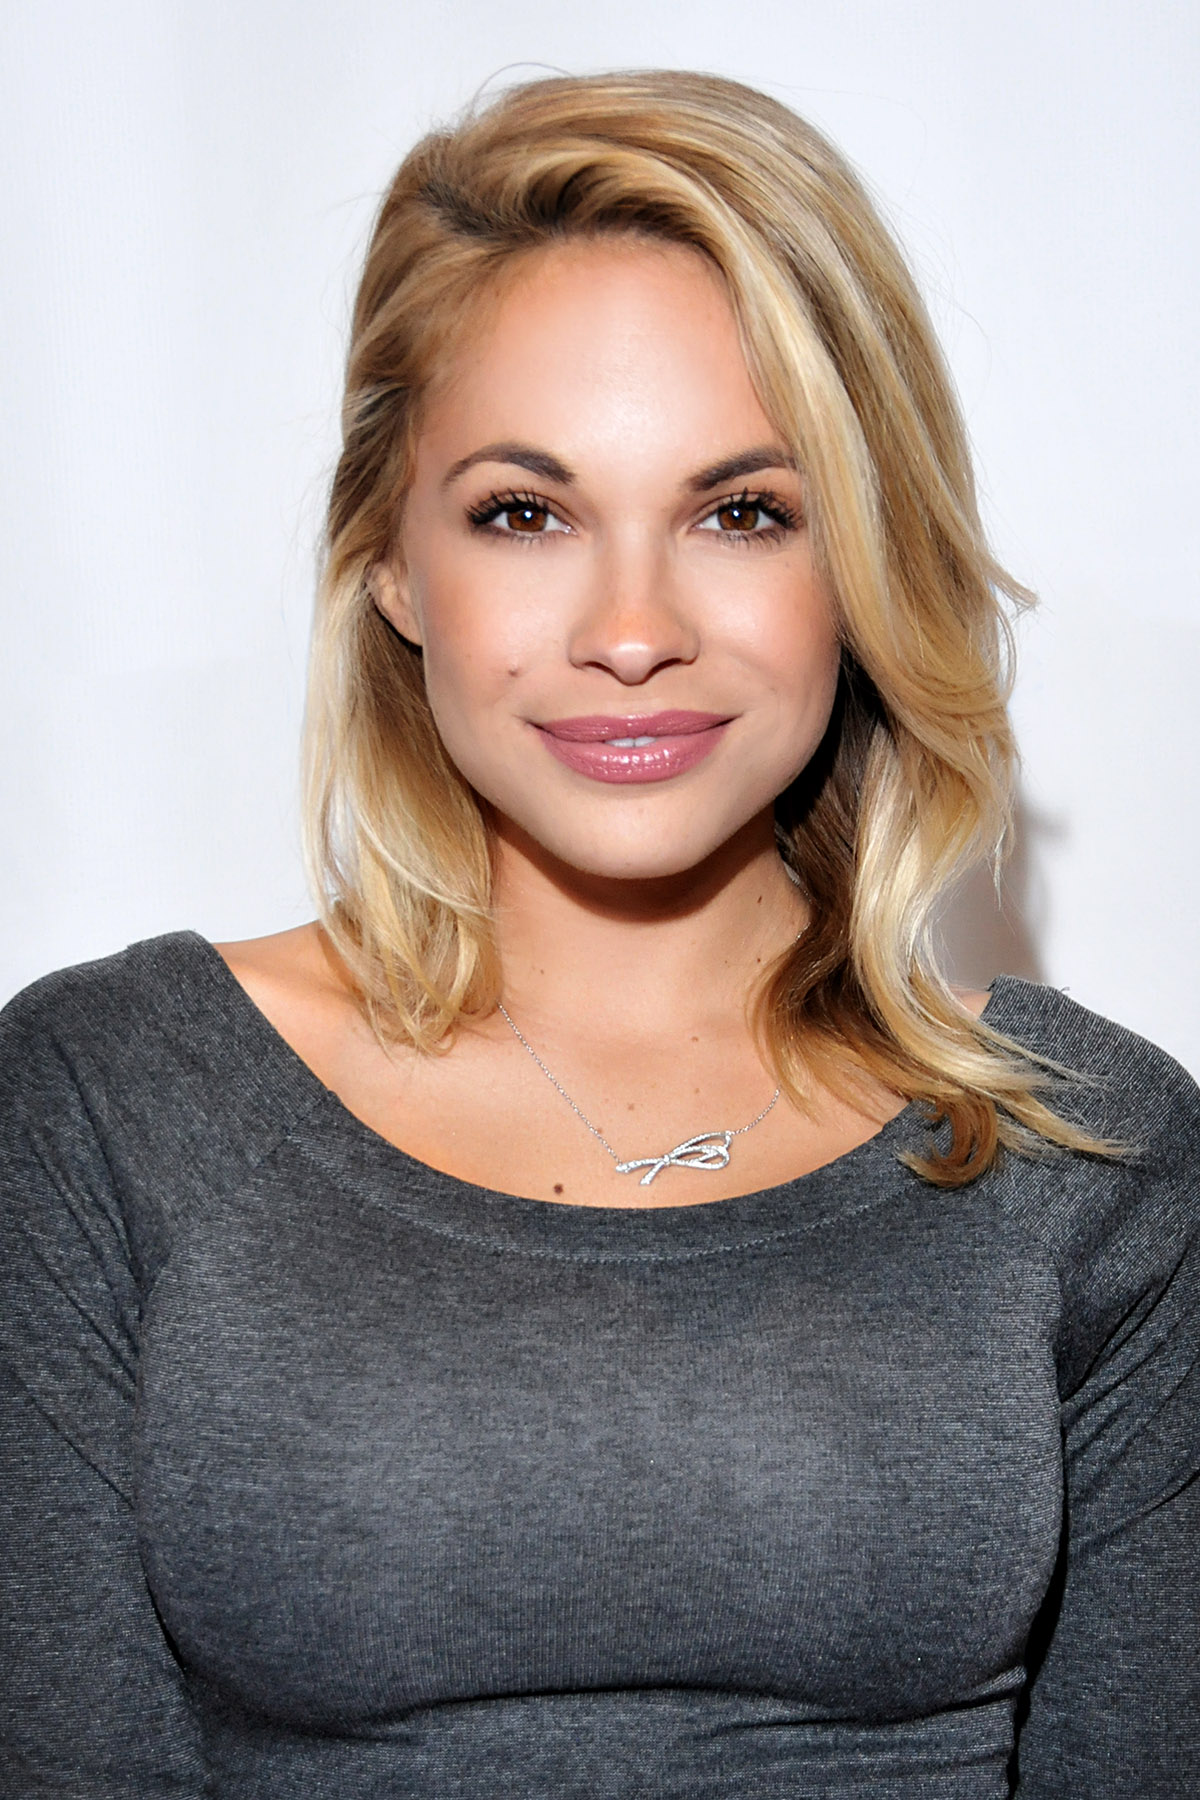 Dani Mathers Playboy Model Pleads Guilty Body Shaming Case